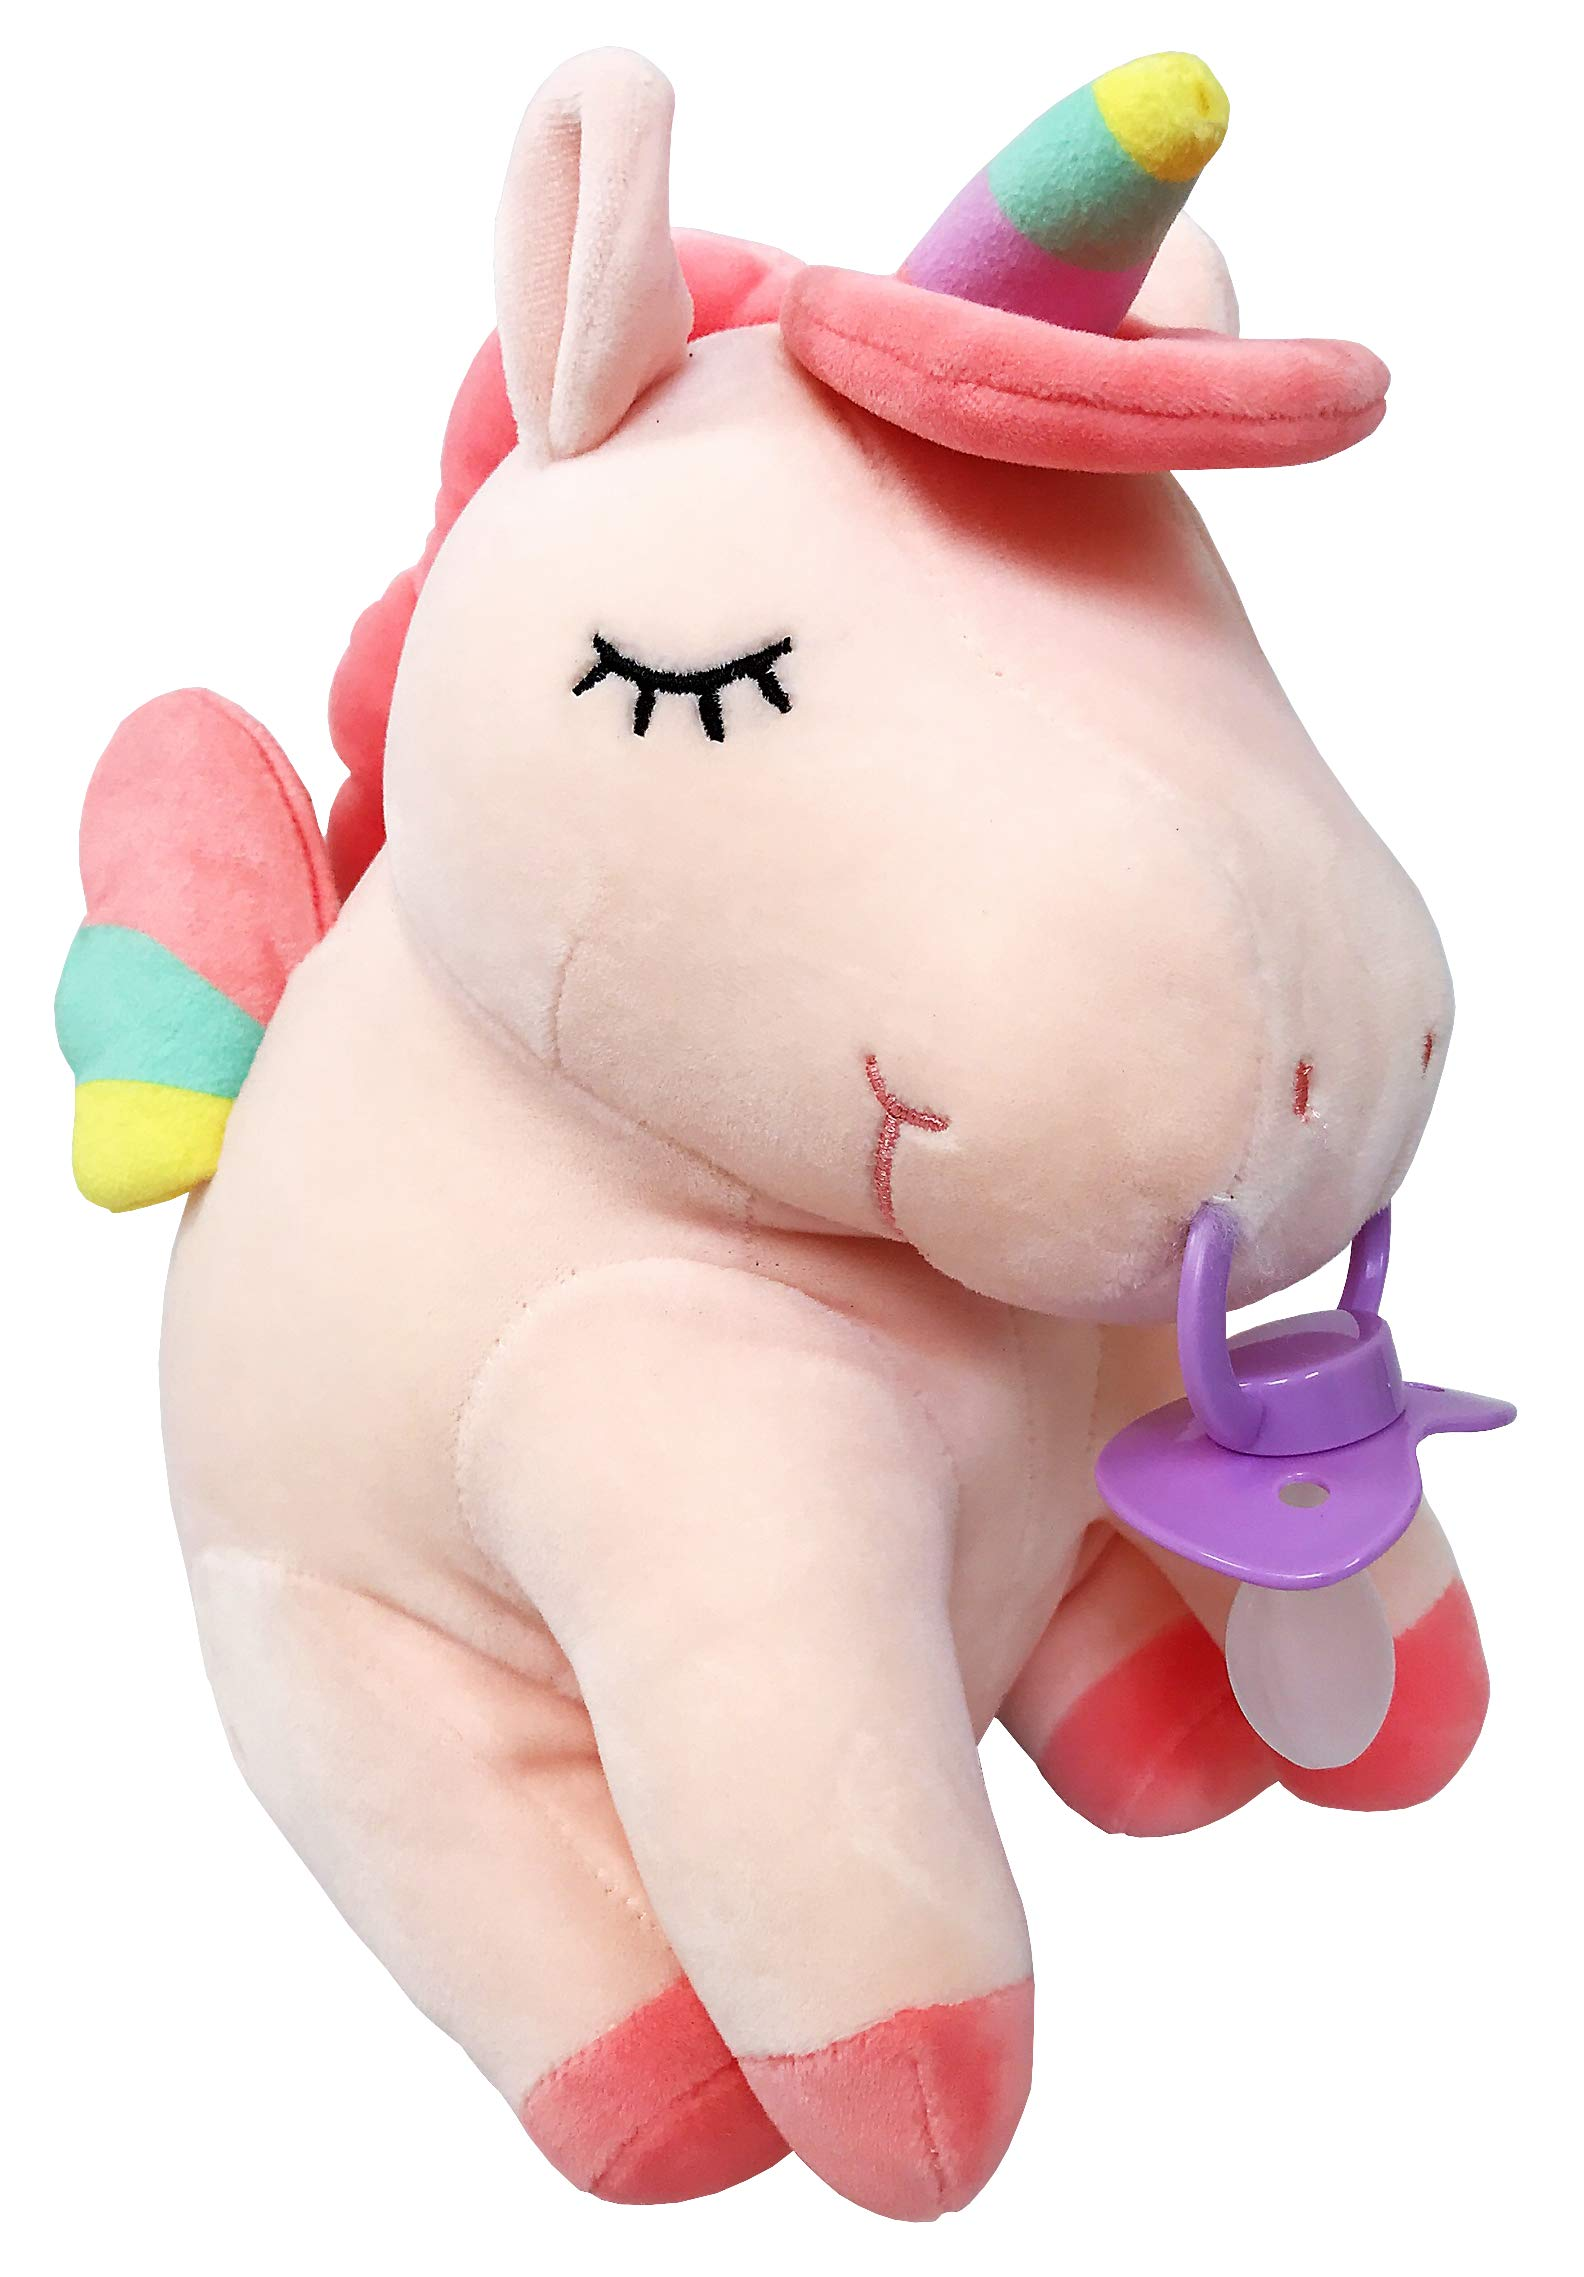 Envy Body Shop Adult Pacifier Stuffie Animal Plush Kiss The Unicorn Pacifier Holder (Pink)